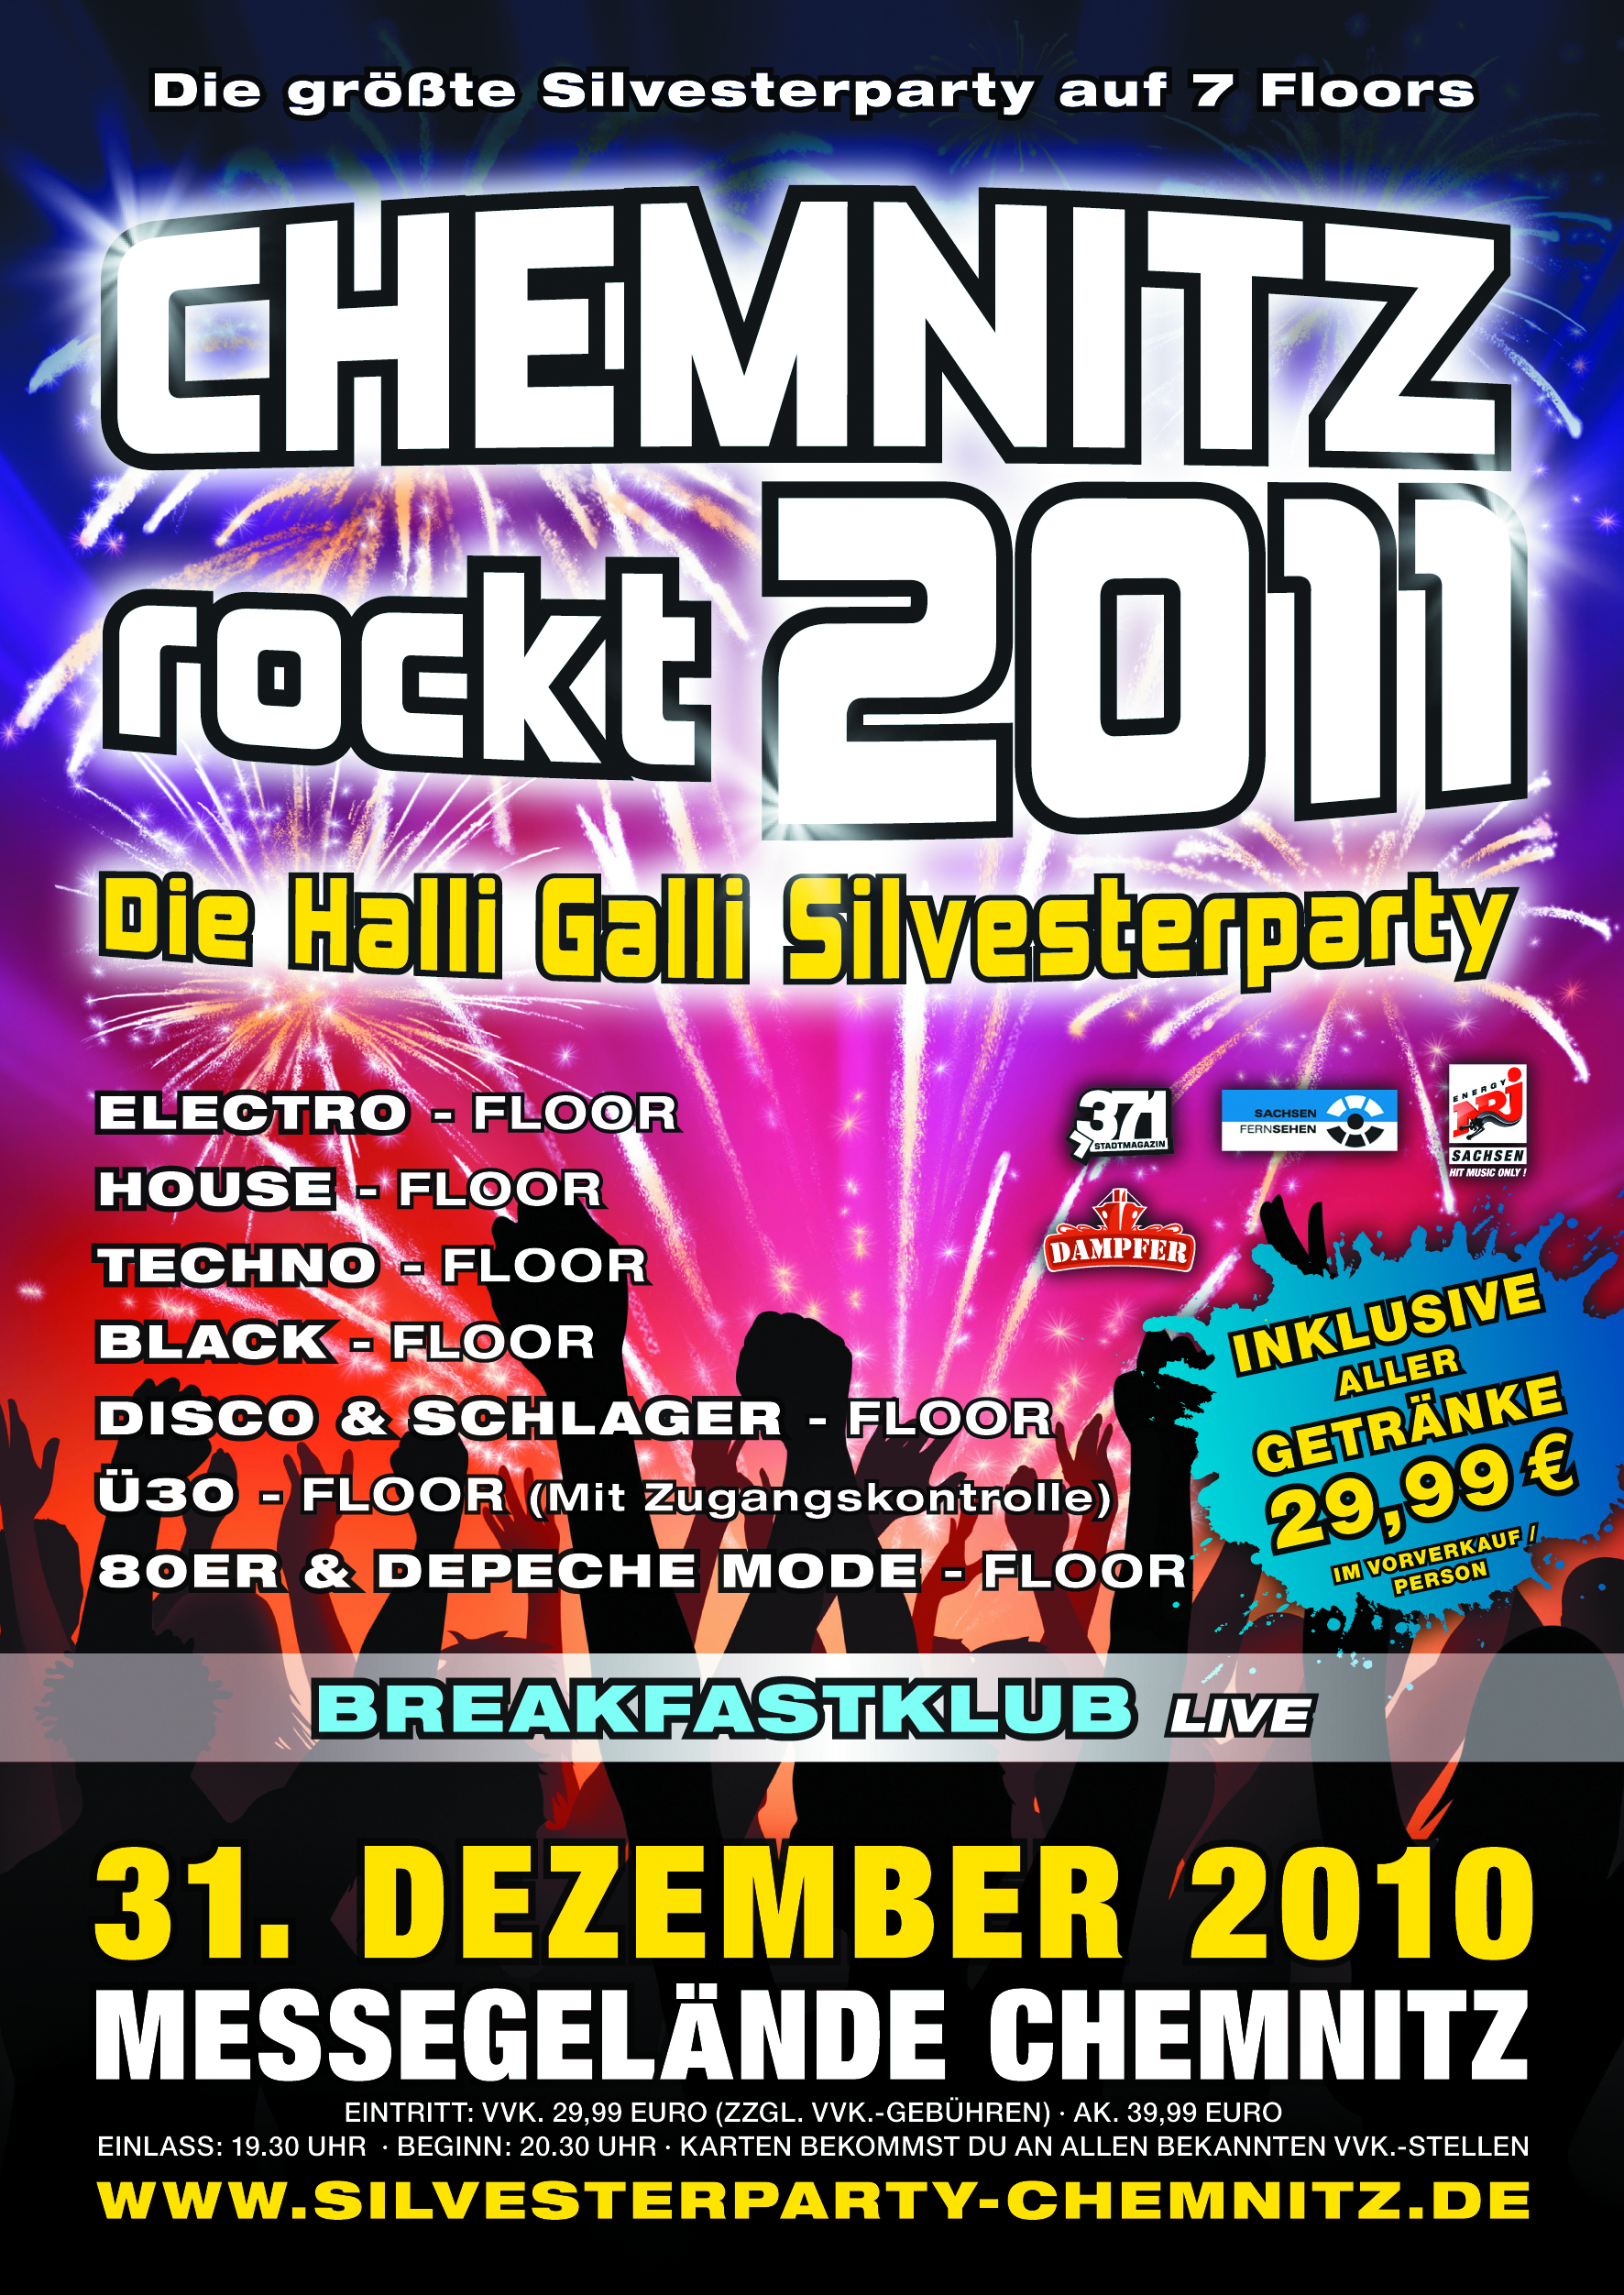 Chemnitz Events Event Silvesterparty Am 2010 12 31 Messe Chemnitz